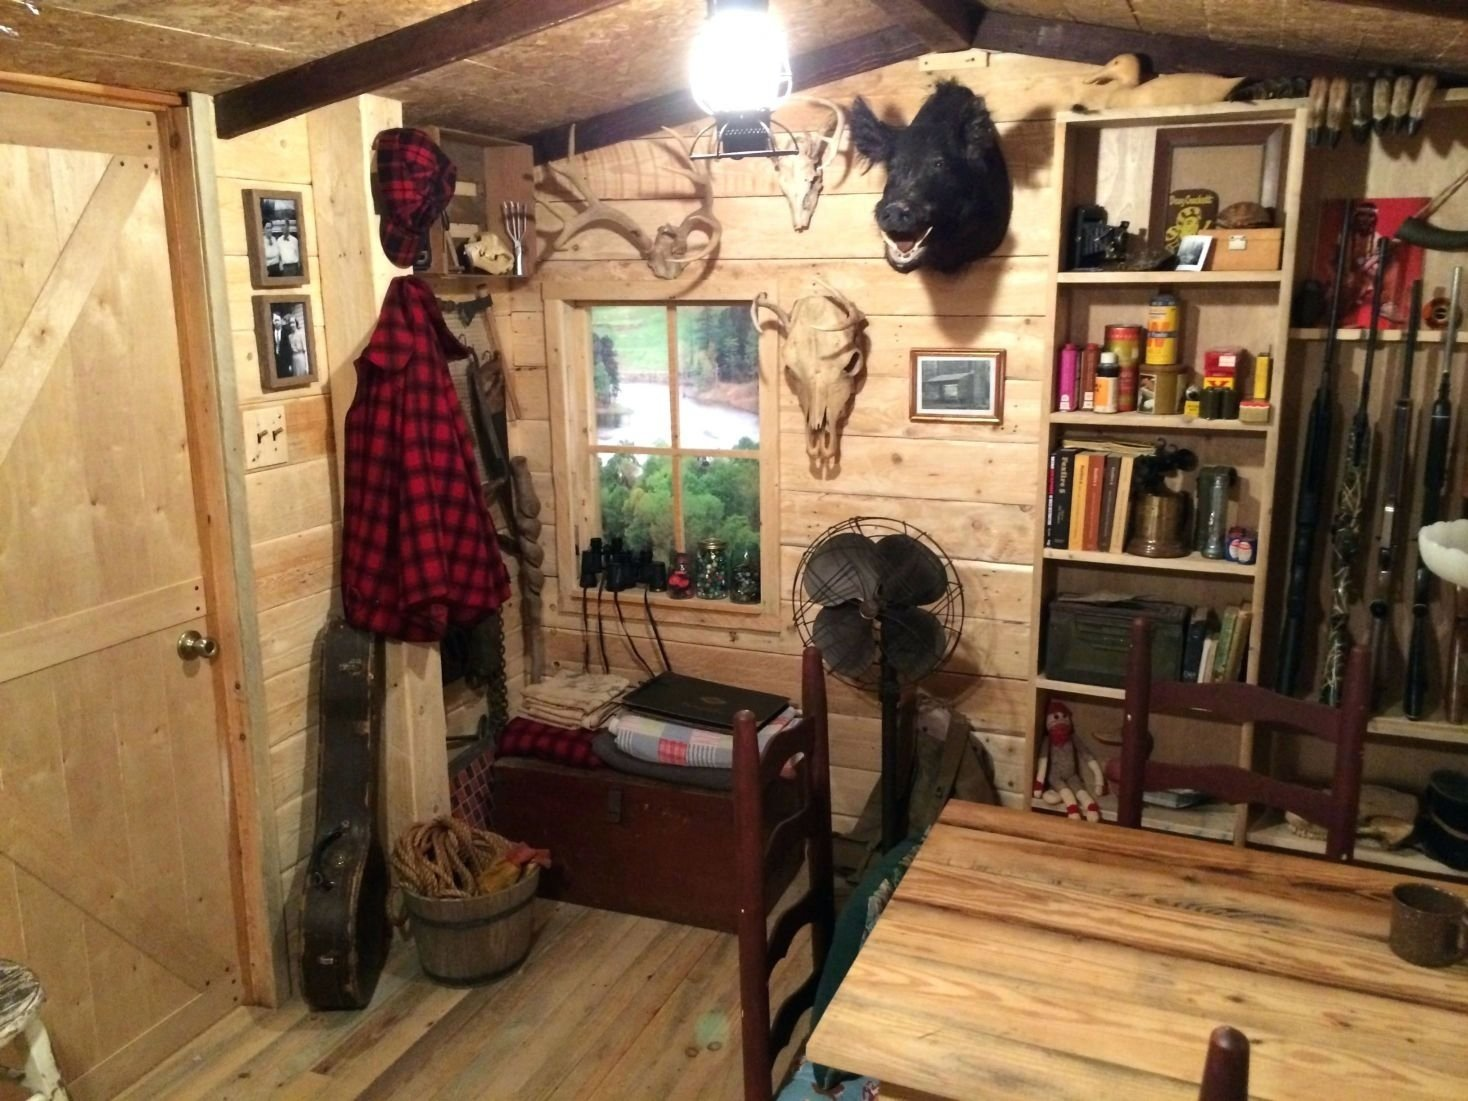 10 Great Log Cabin Decorating Ideas Pictures appealing hunting cabin decorating ideas at best home design tips 2020